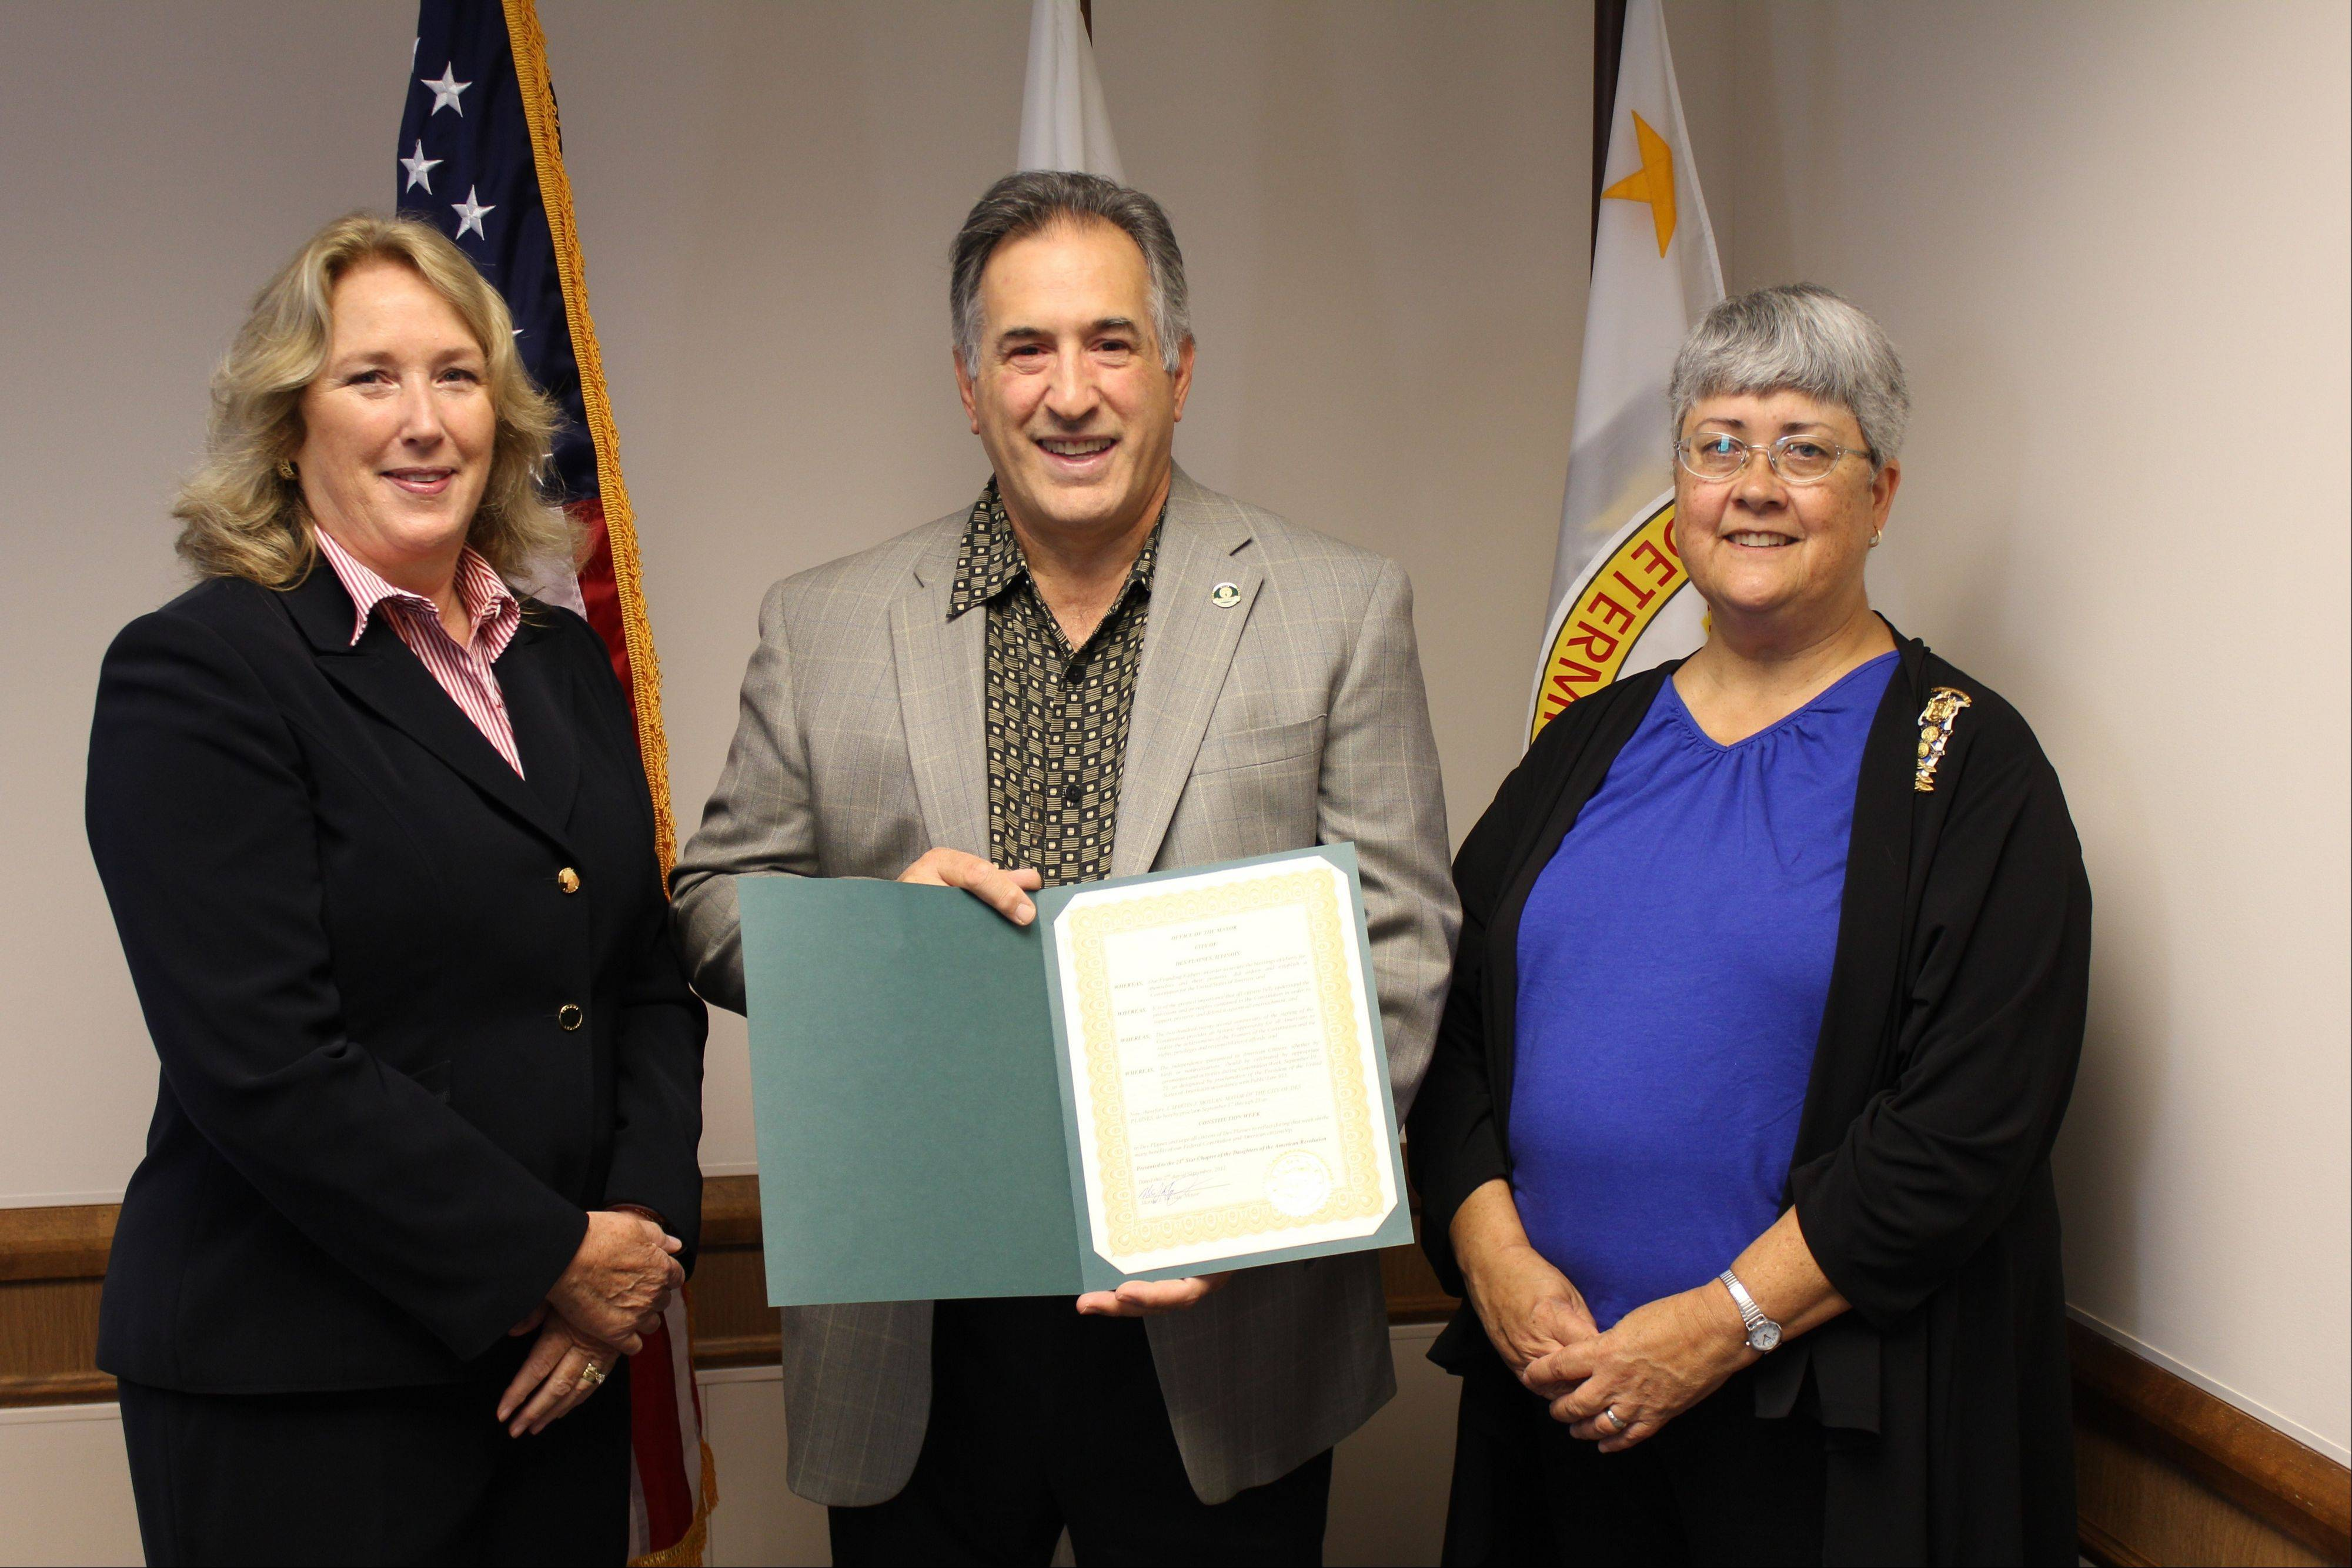 Pictured in the mayor's office, from left, are: Carol Gale, Twenty-First Star Chapter Daughters of the American Revolution Constitution Week representative, Des Plaines Mayor Martin J. Moylan and Bonnie J. Reese, publicity chairman Twenty-First Star Chapter Daughters of the American Revolution.